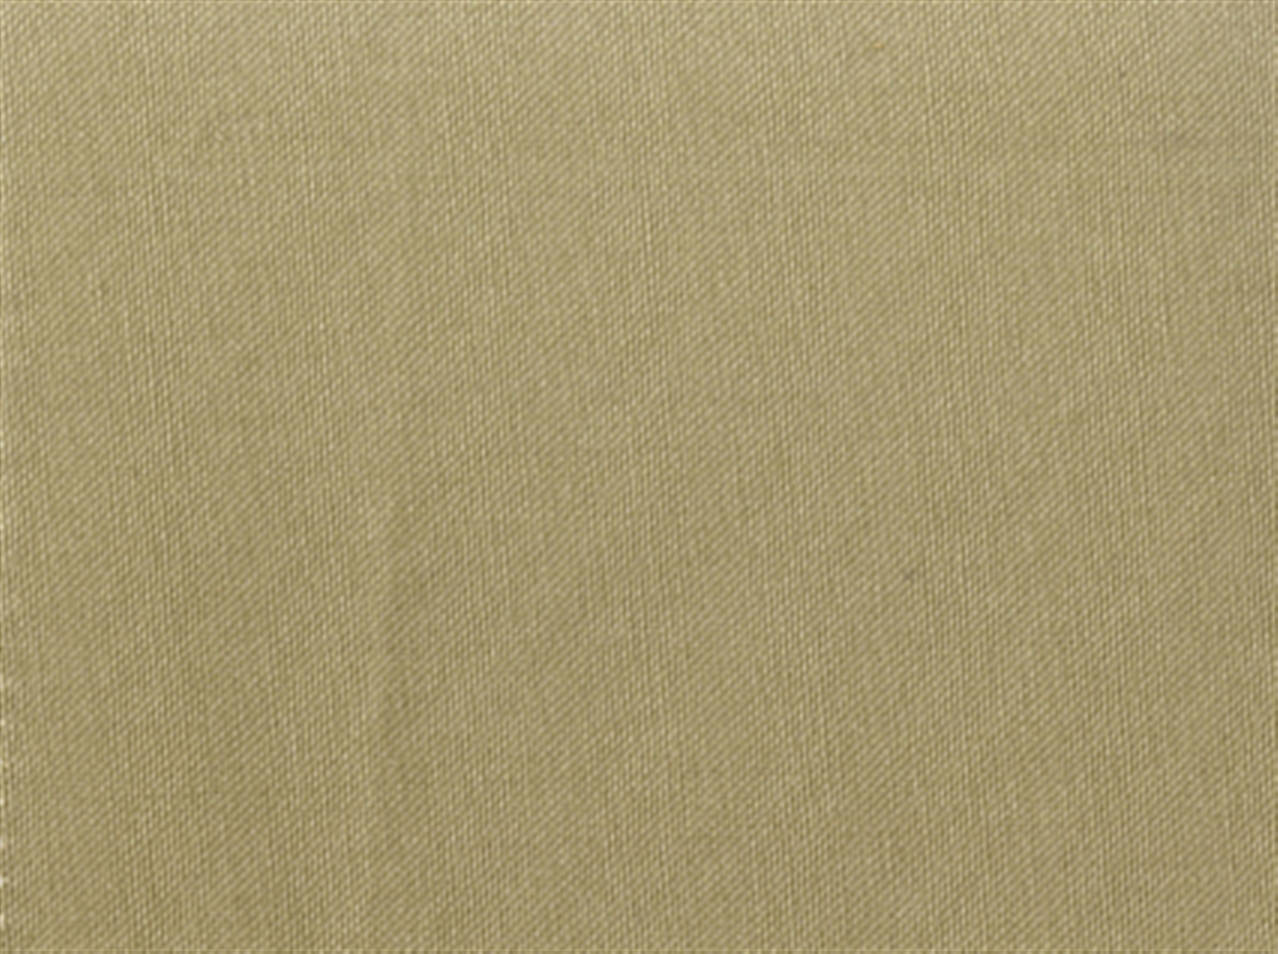 Covington Solids%20and%20Textures Lavate